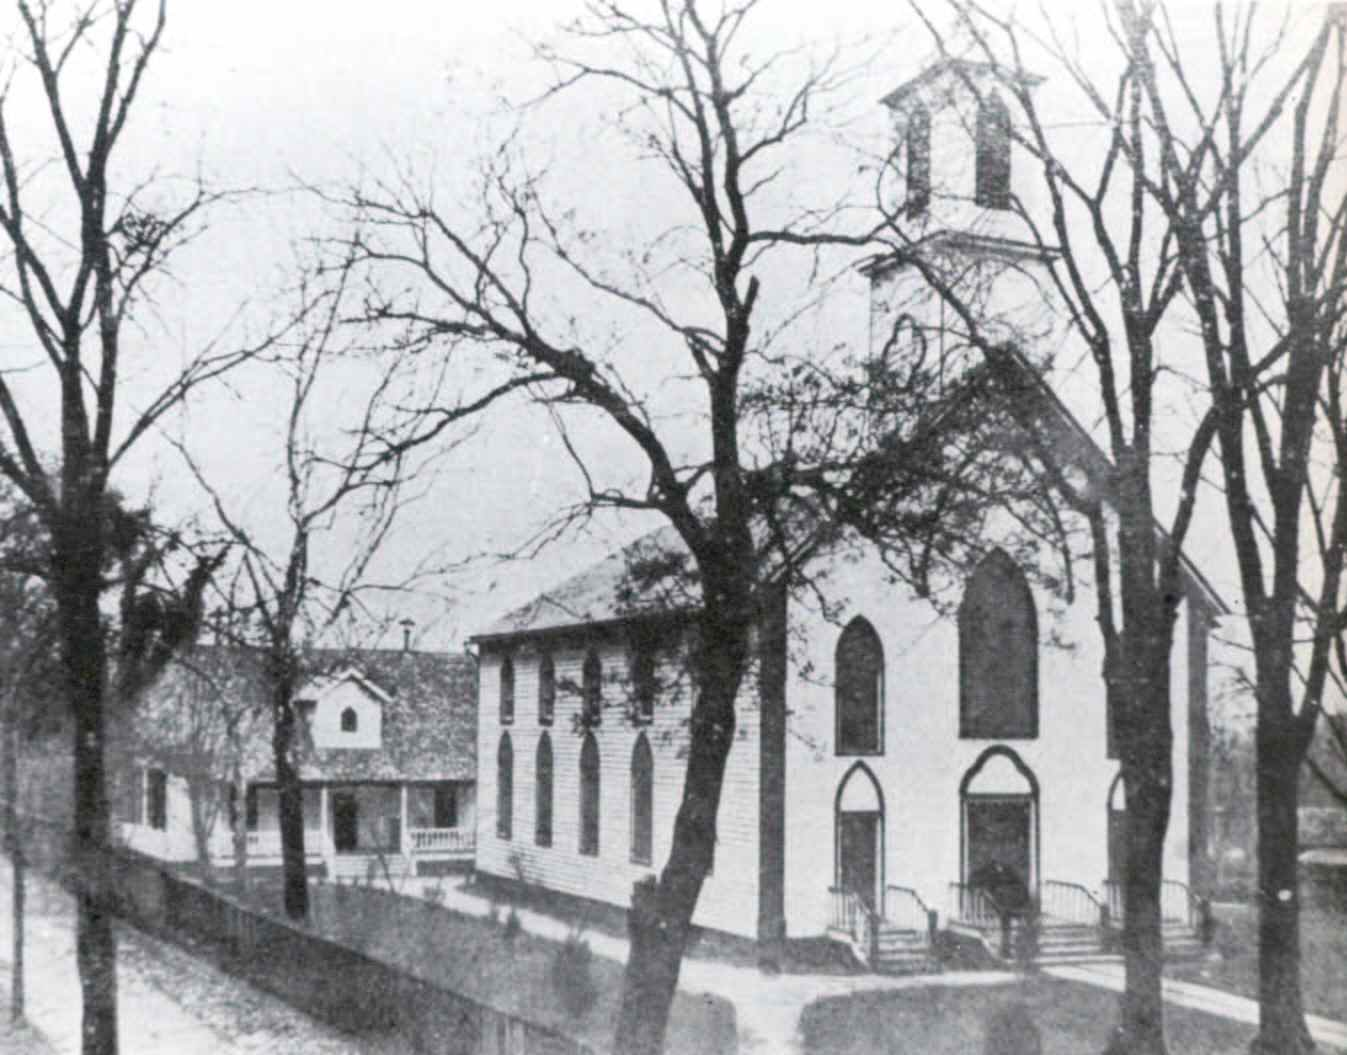 St. Patrick's Church in an unknown year.